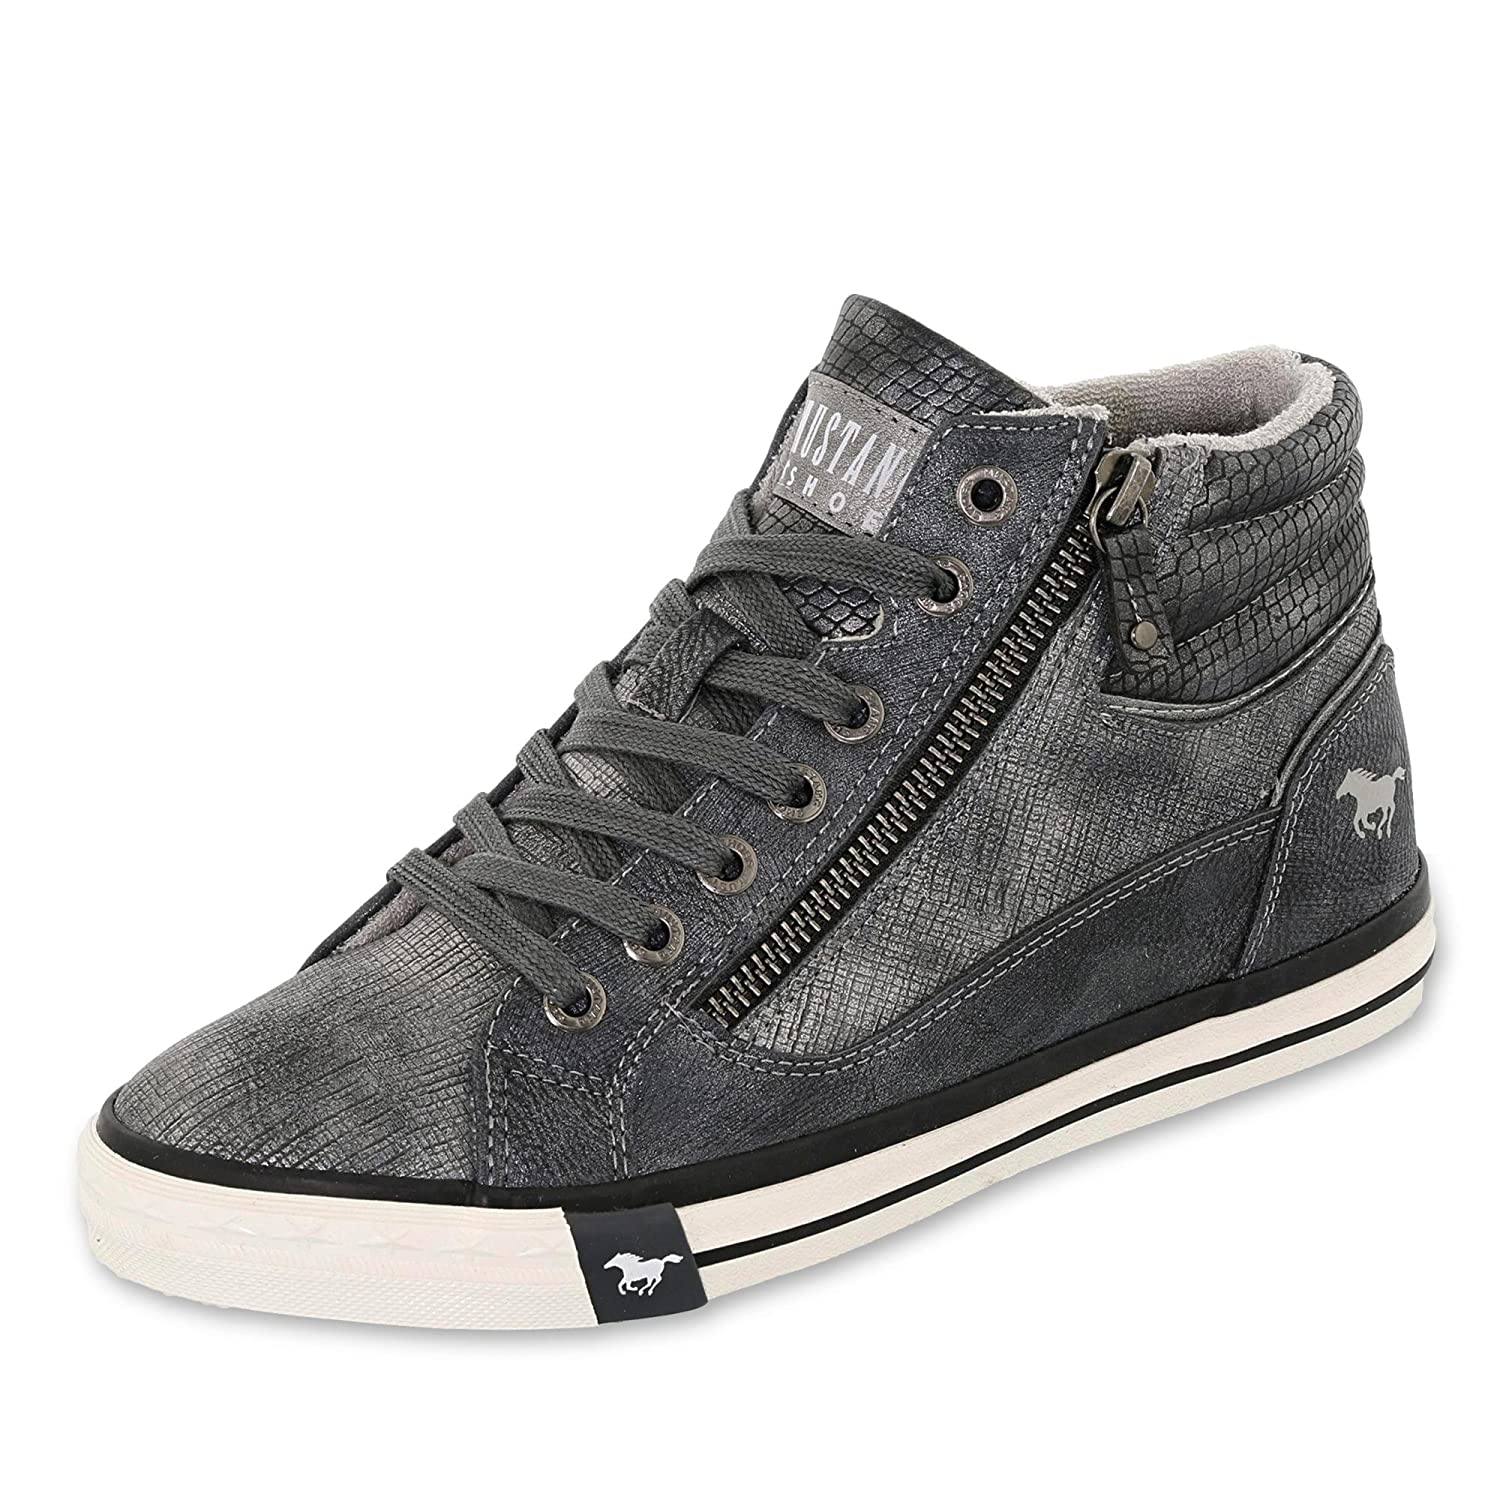 Mustang Damen High Top Turnschuhe Grau